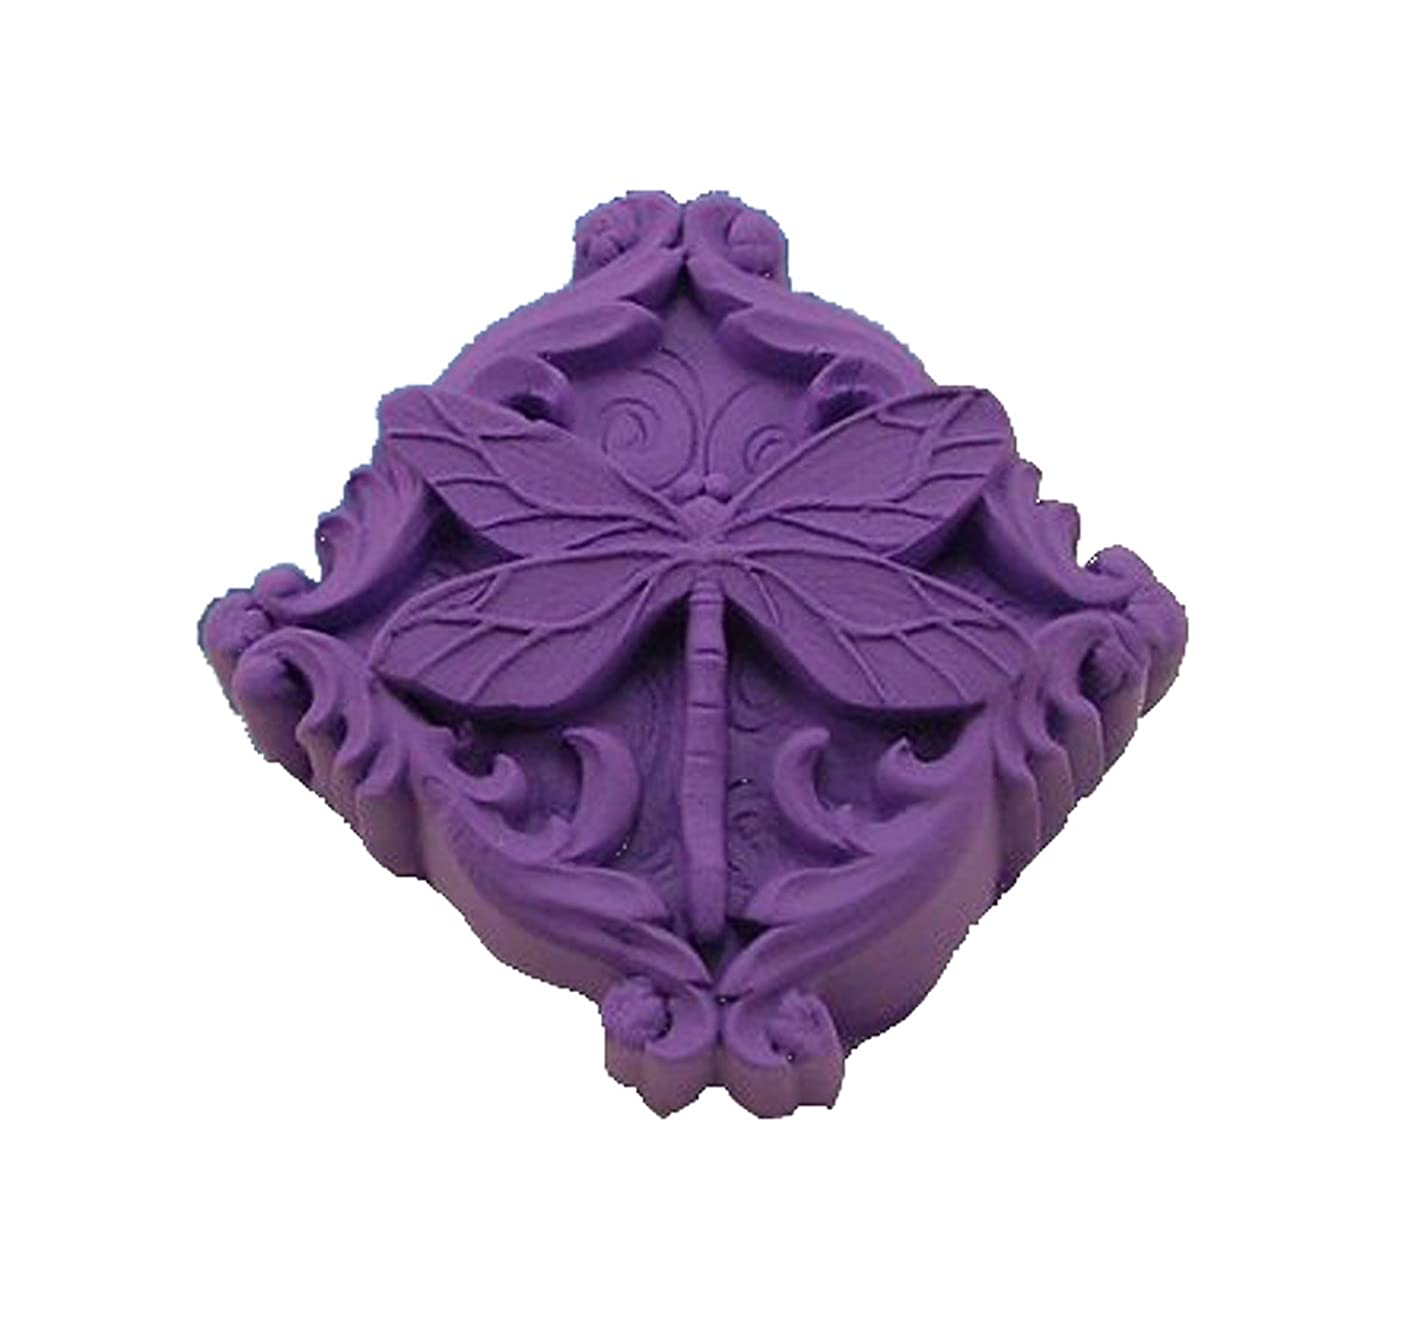 Longzang Dragonfly Art Silicone Craft DIY Handmade Soap Molds (S002)